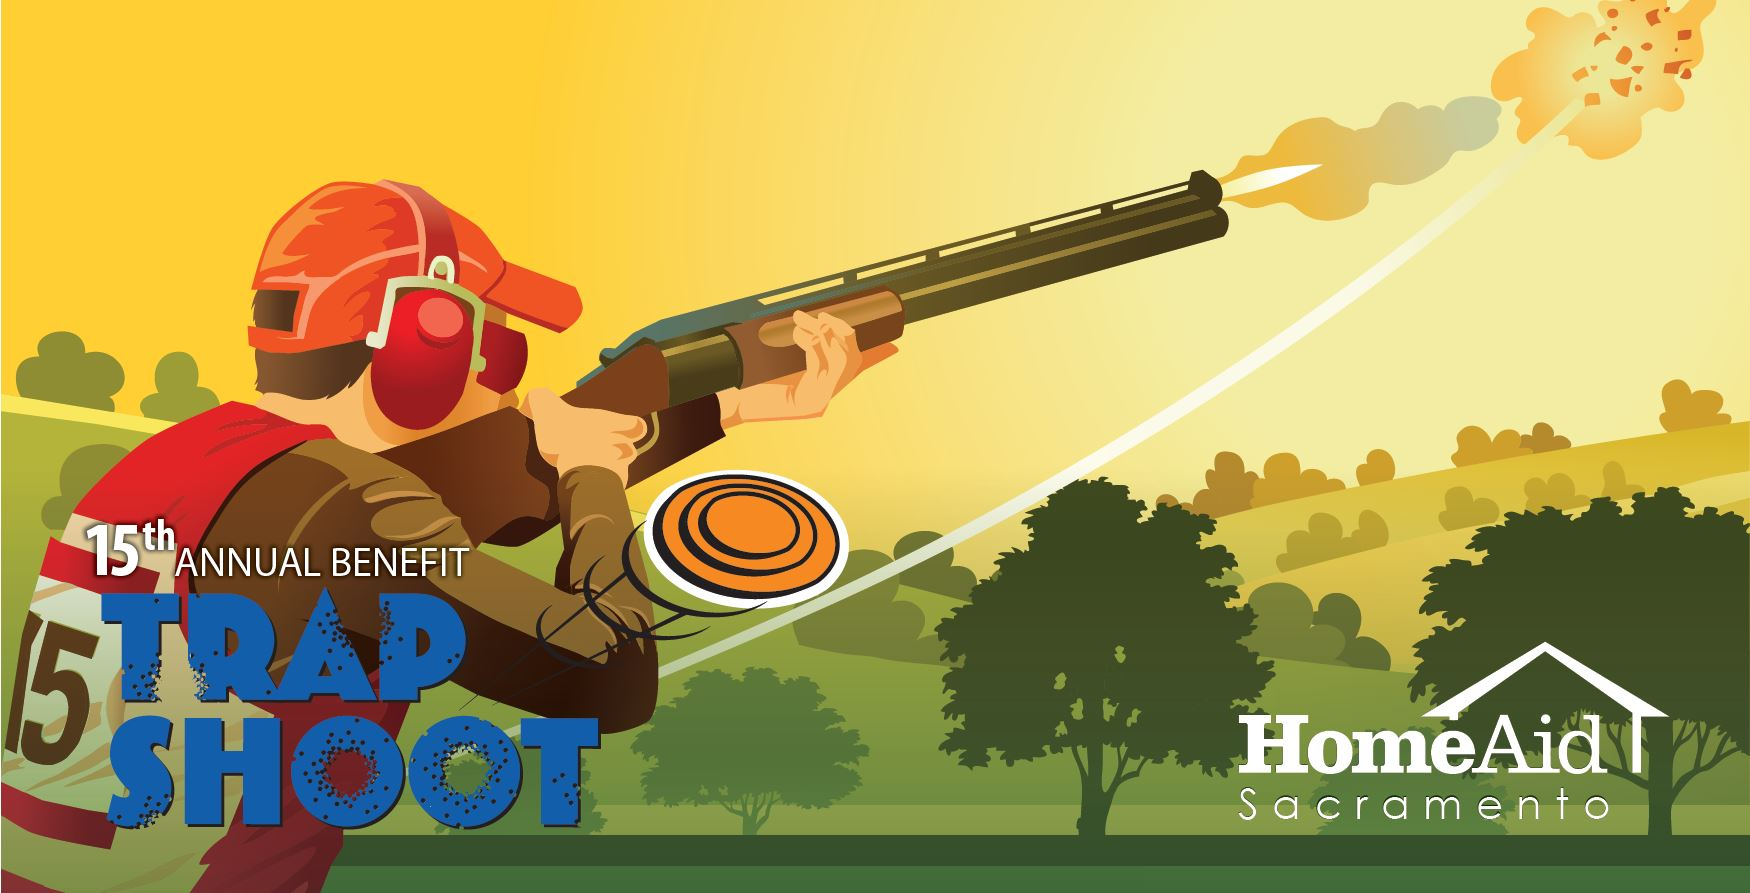 Over 80 teams participated in the sold-out HomeAid Sacramento Trapshoot.